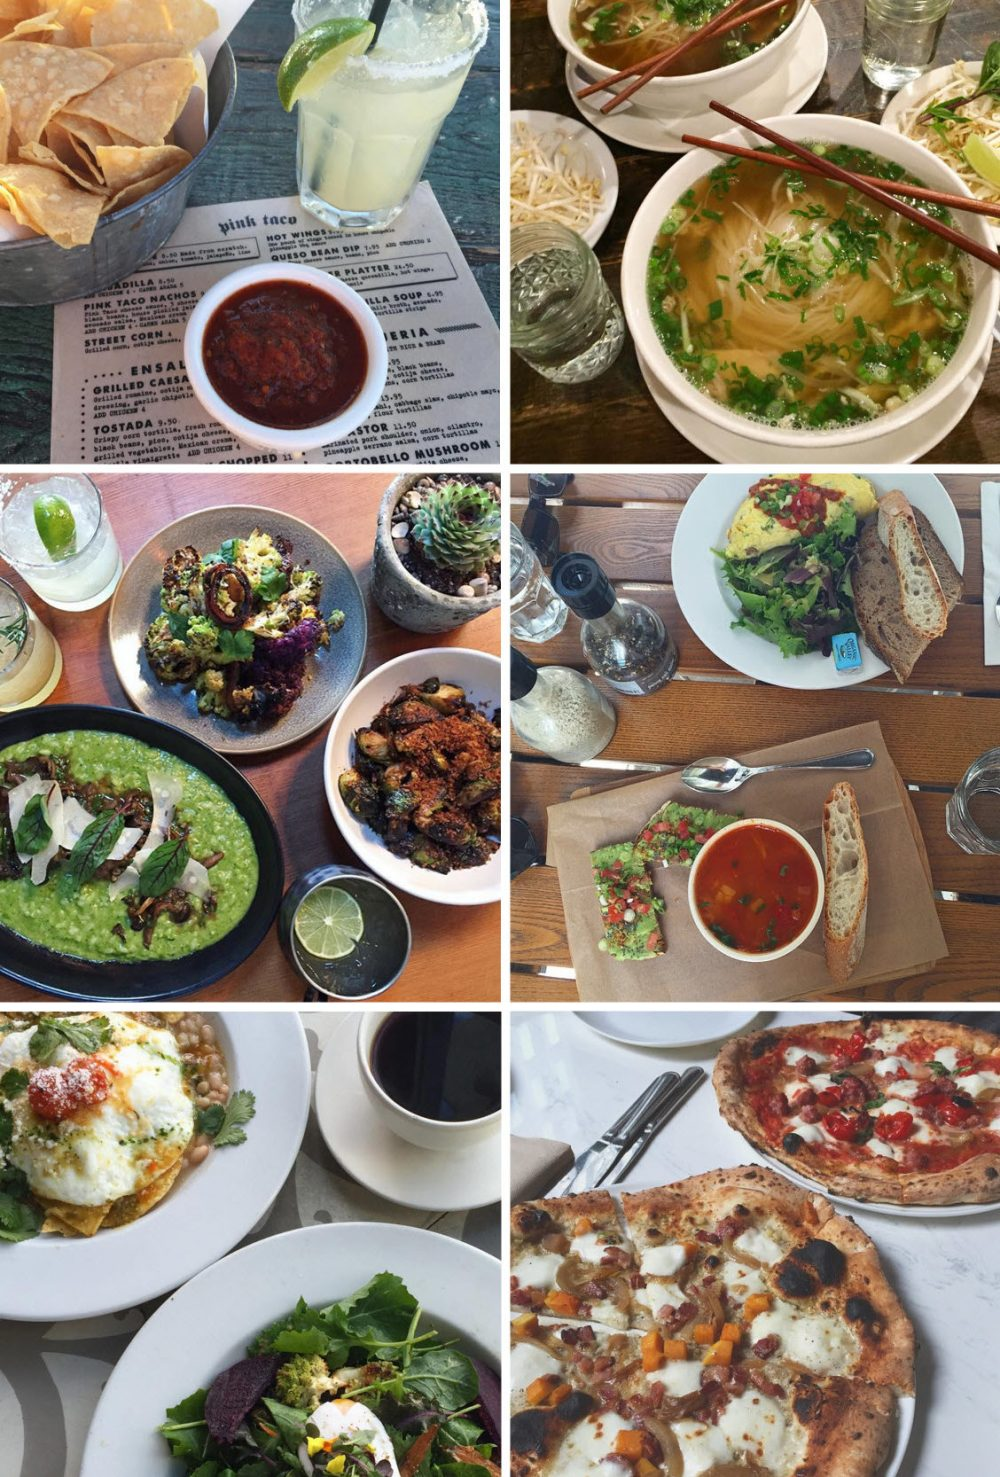 How to Take Great Restaurant Food Photos for Instagram